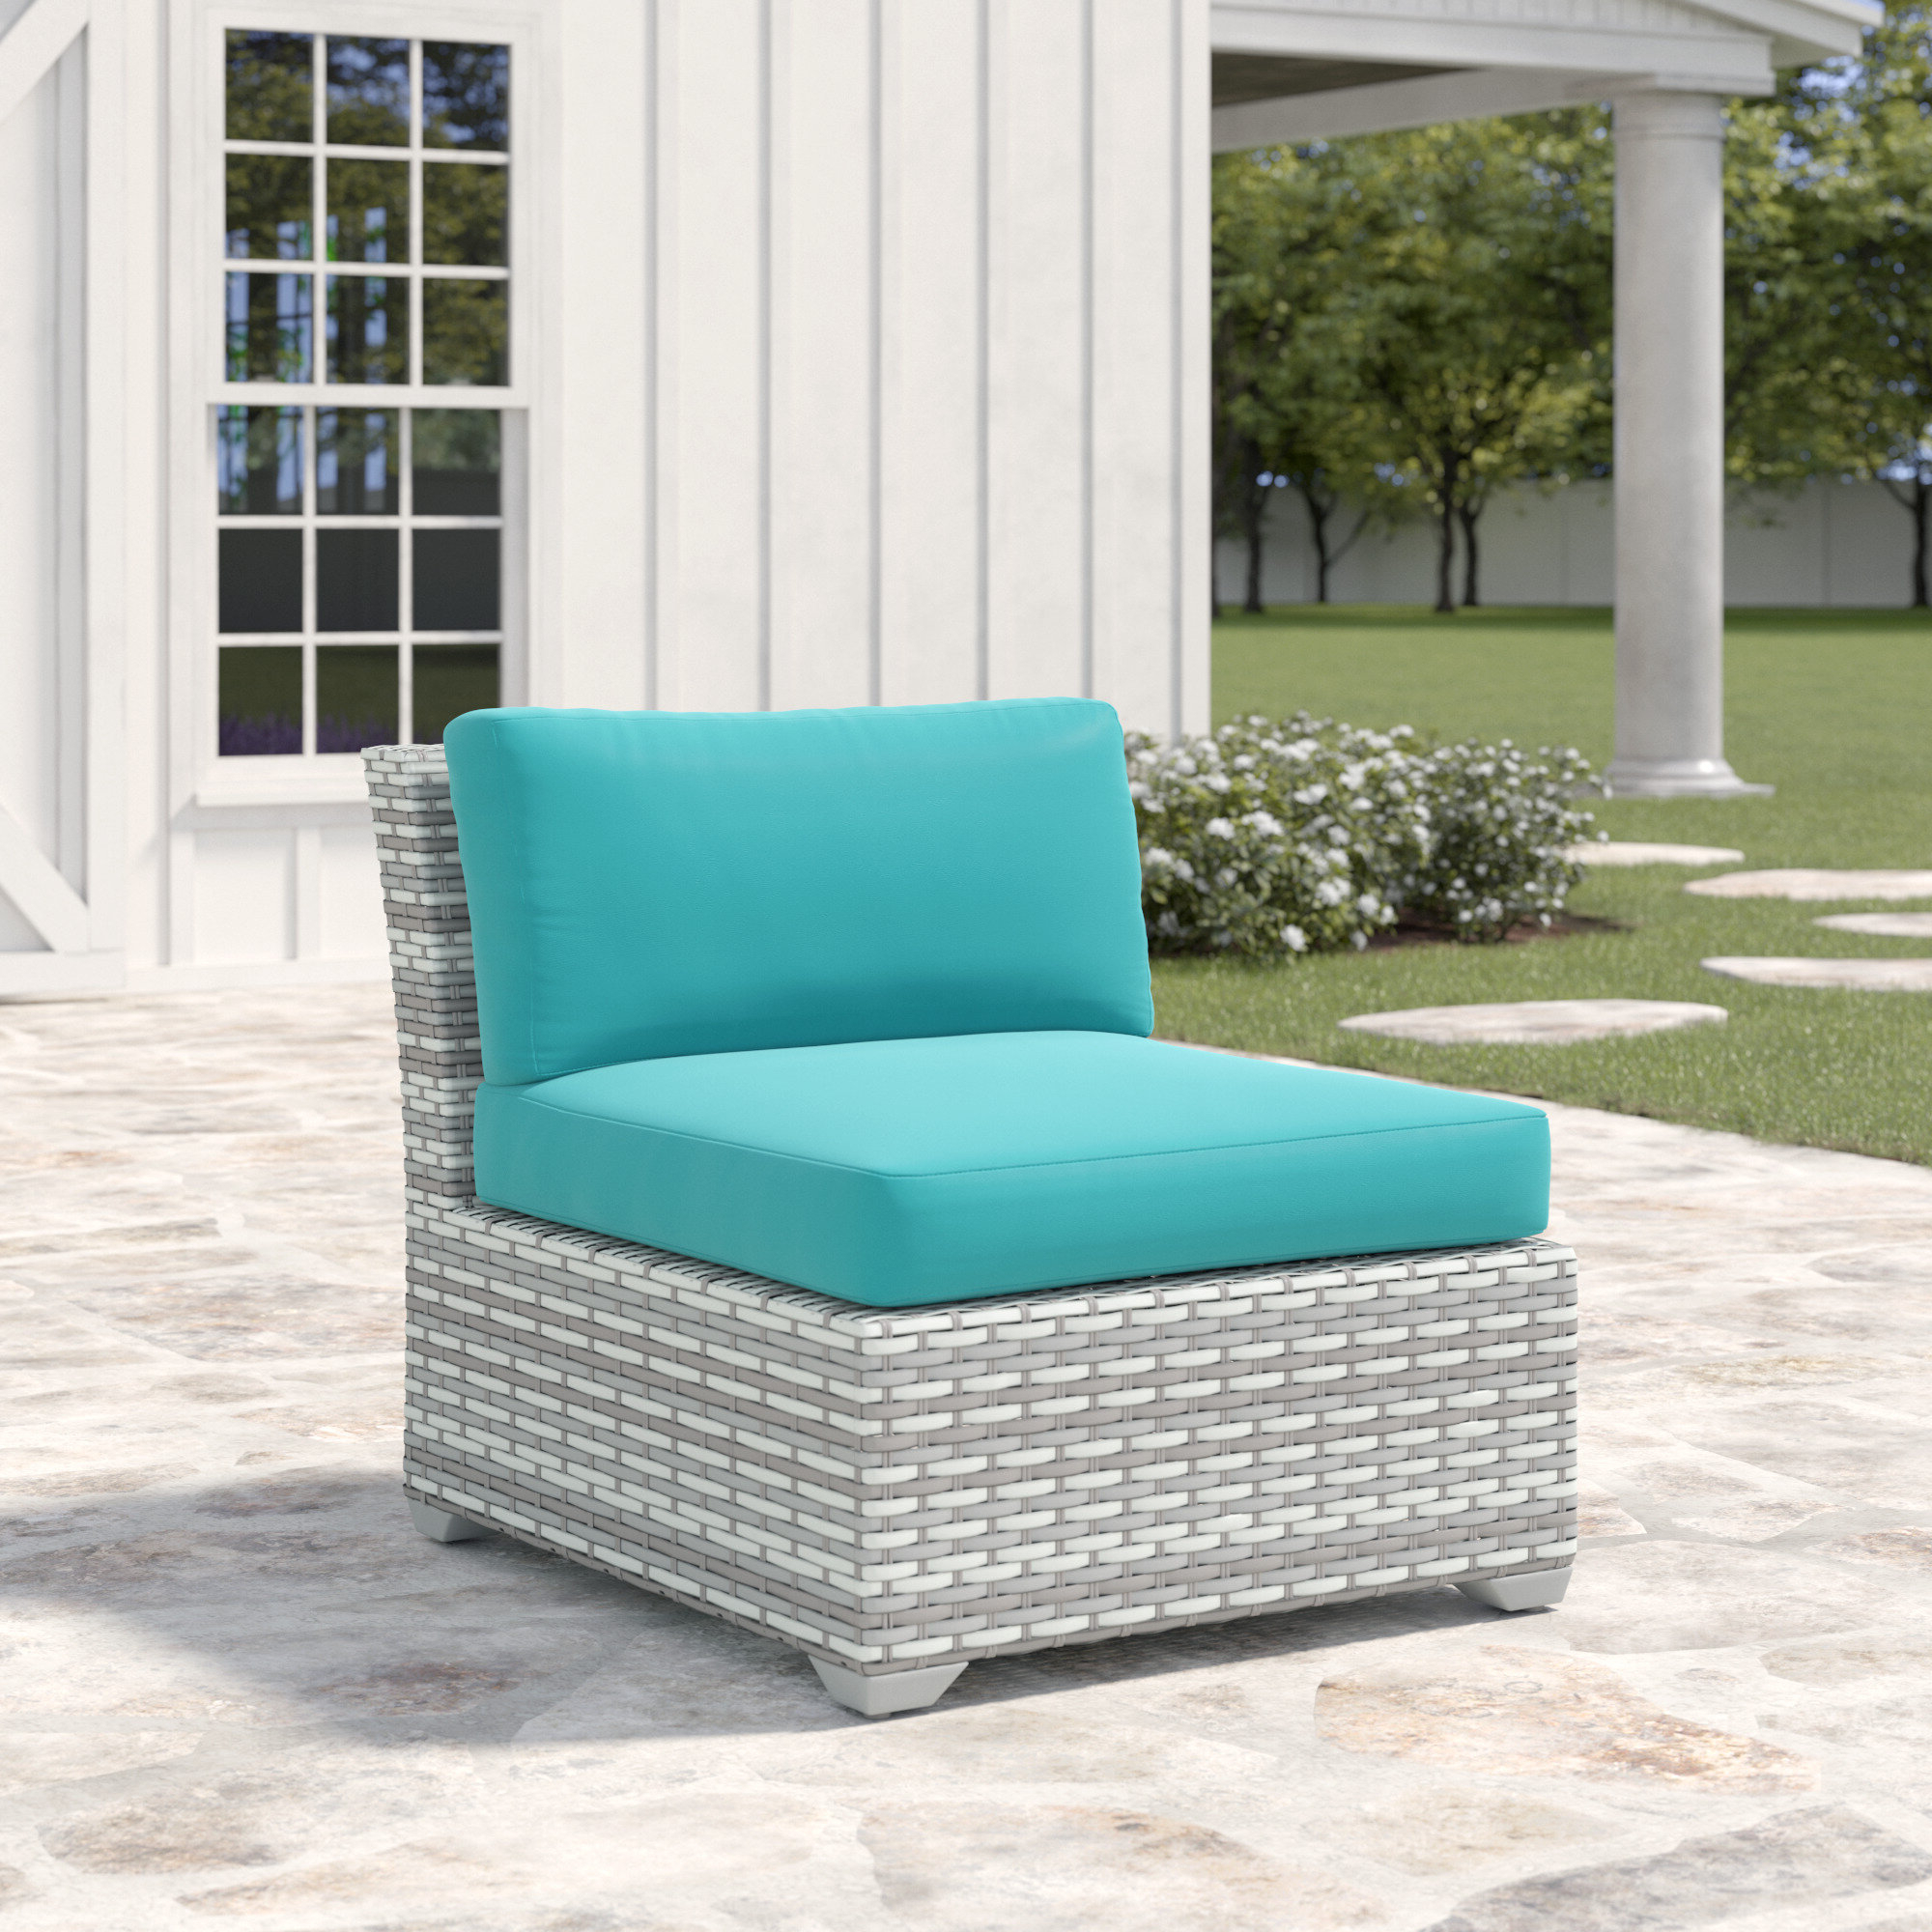 Falmouth Loveseats With Cushions For Most Current Falmouth Armless Patio Chair With Cushions (View 6 of 20)